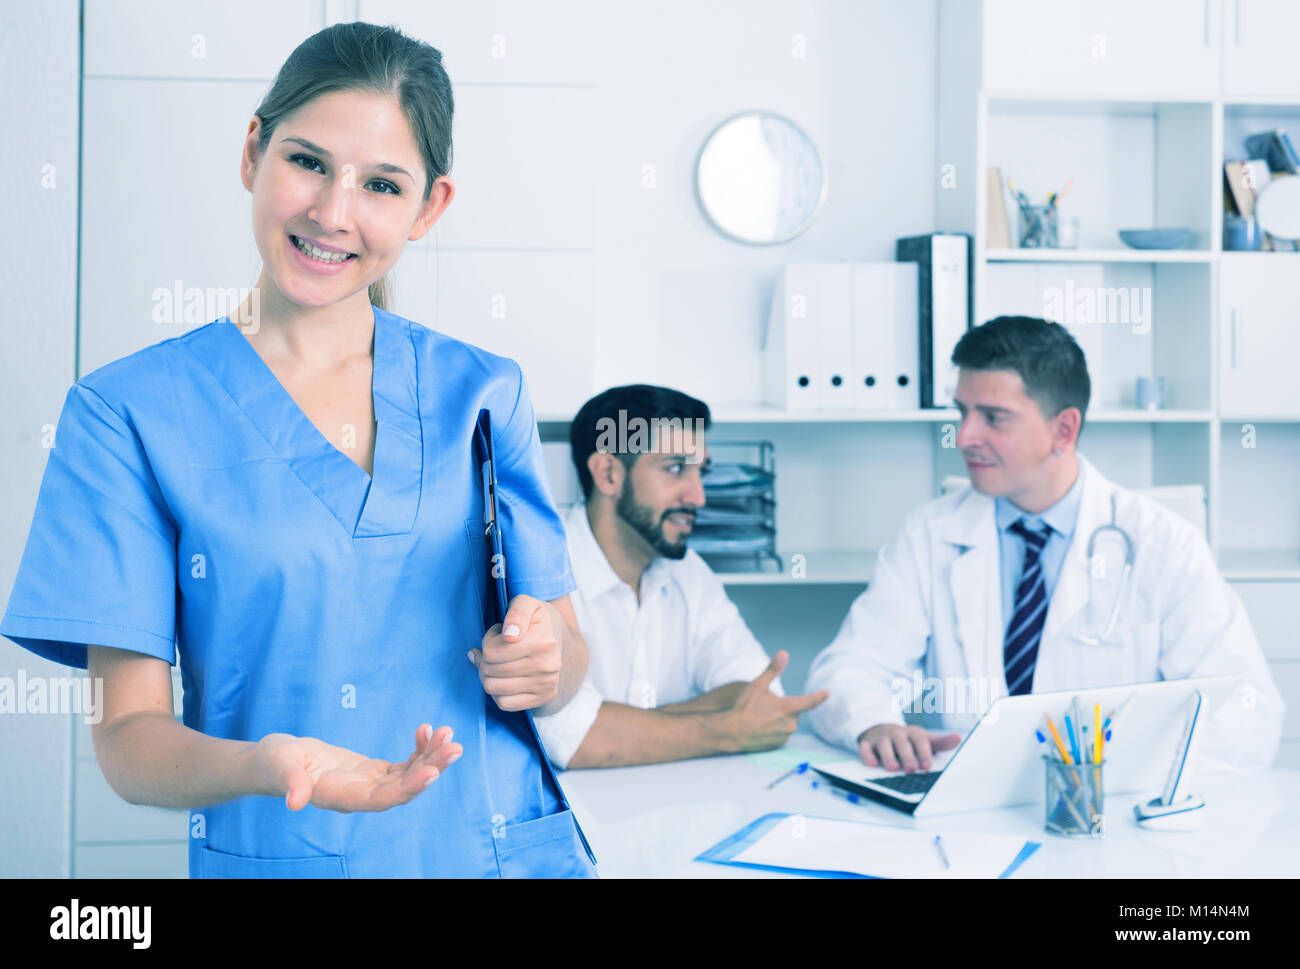 Portrait of young female doctor meeting patient in medical office - Stock Image